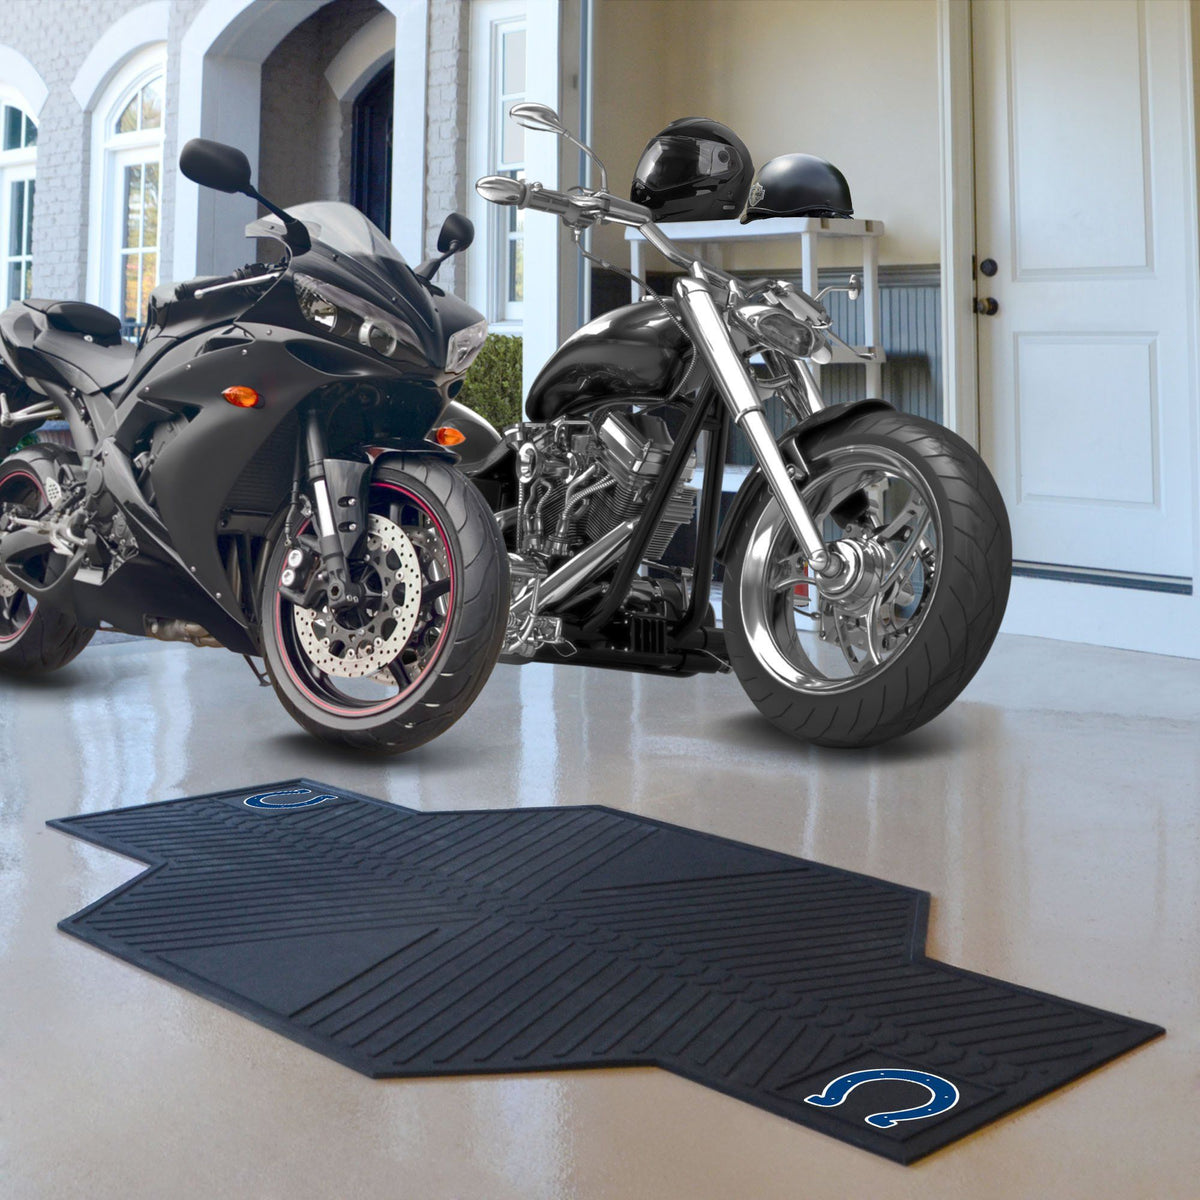 "NFL - Motorcycle Mat, 82.5"" x 42"" NFL Mats, Motorcycle Accessory, Motorcycle Mat, NFL, Auto Fan Mats Indianapolis Colts"